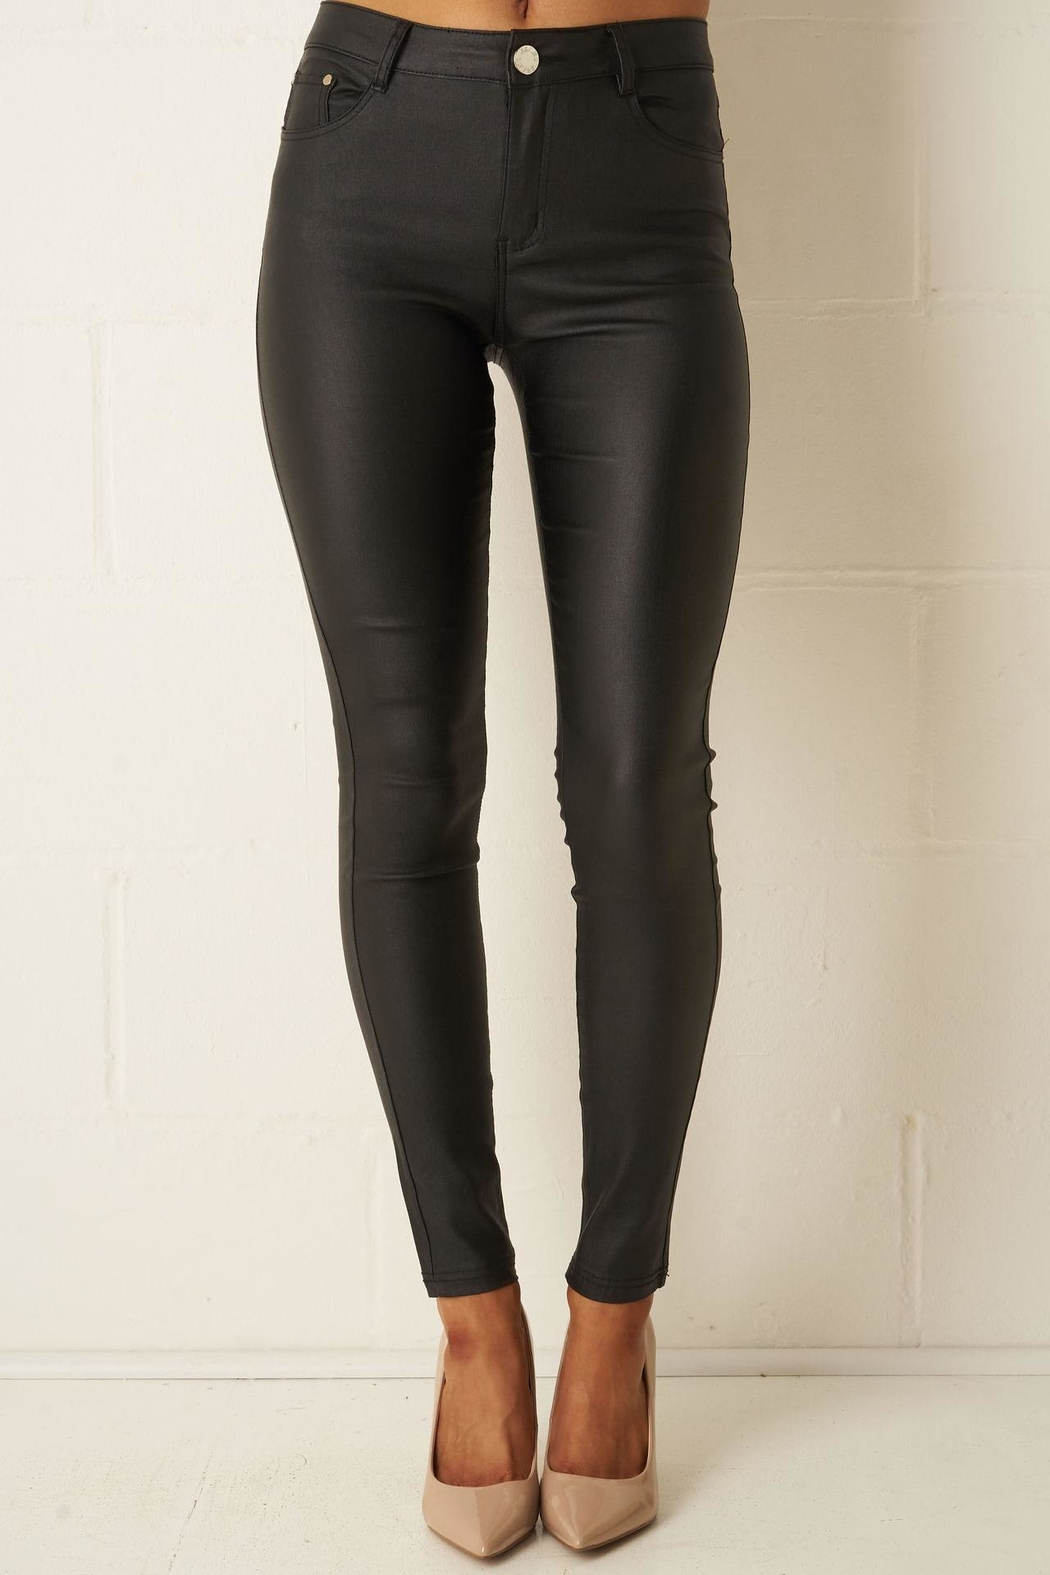 frontrow Black Wax-Coated Jeans - Main Image